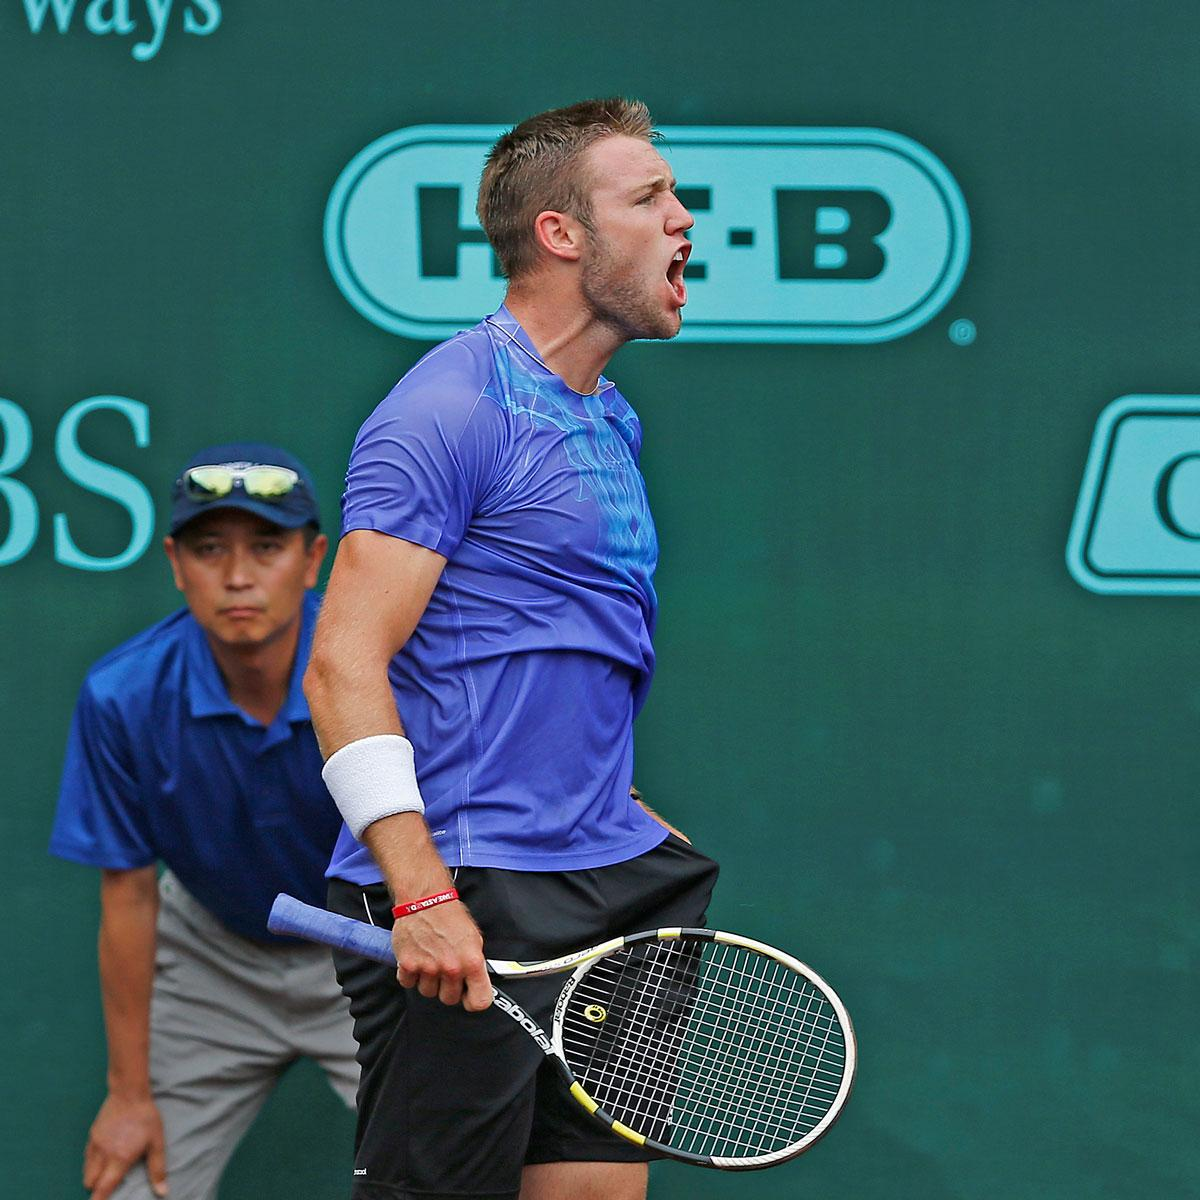 Jack Sock wins his 1st #ATP singles title with a 7-6(9), 7-6(2) victory of Sam Querrey. #USClay http://t.co/hmRIIxwTXR